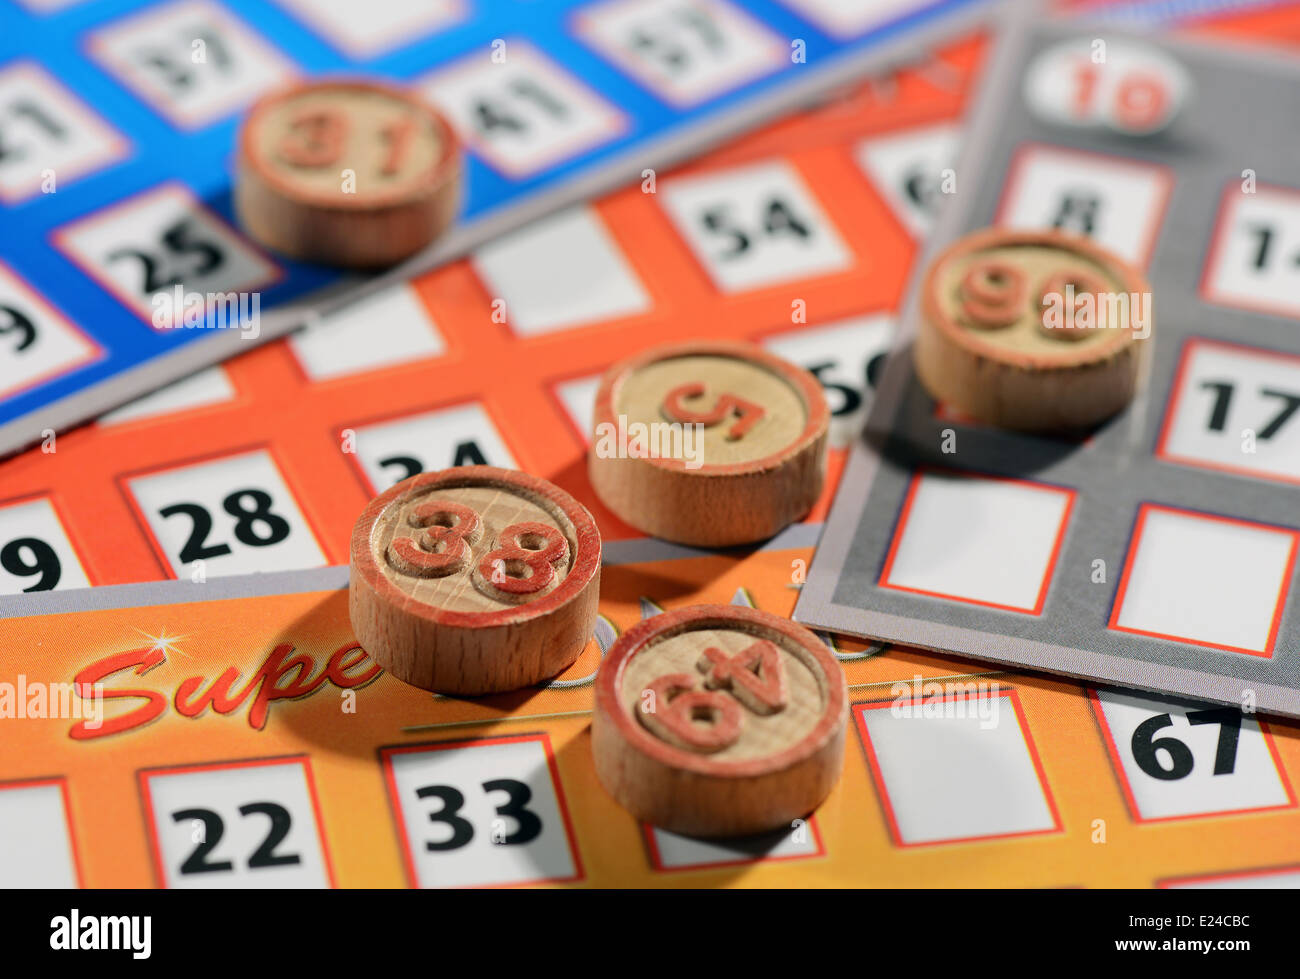 Bingo cards and numbers - Stock Image